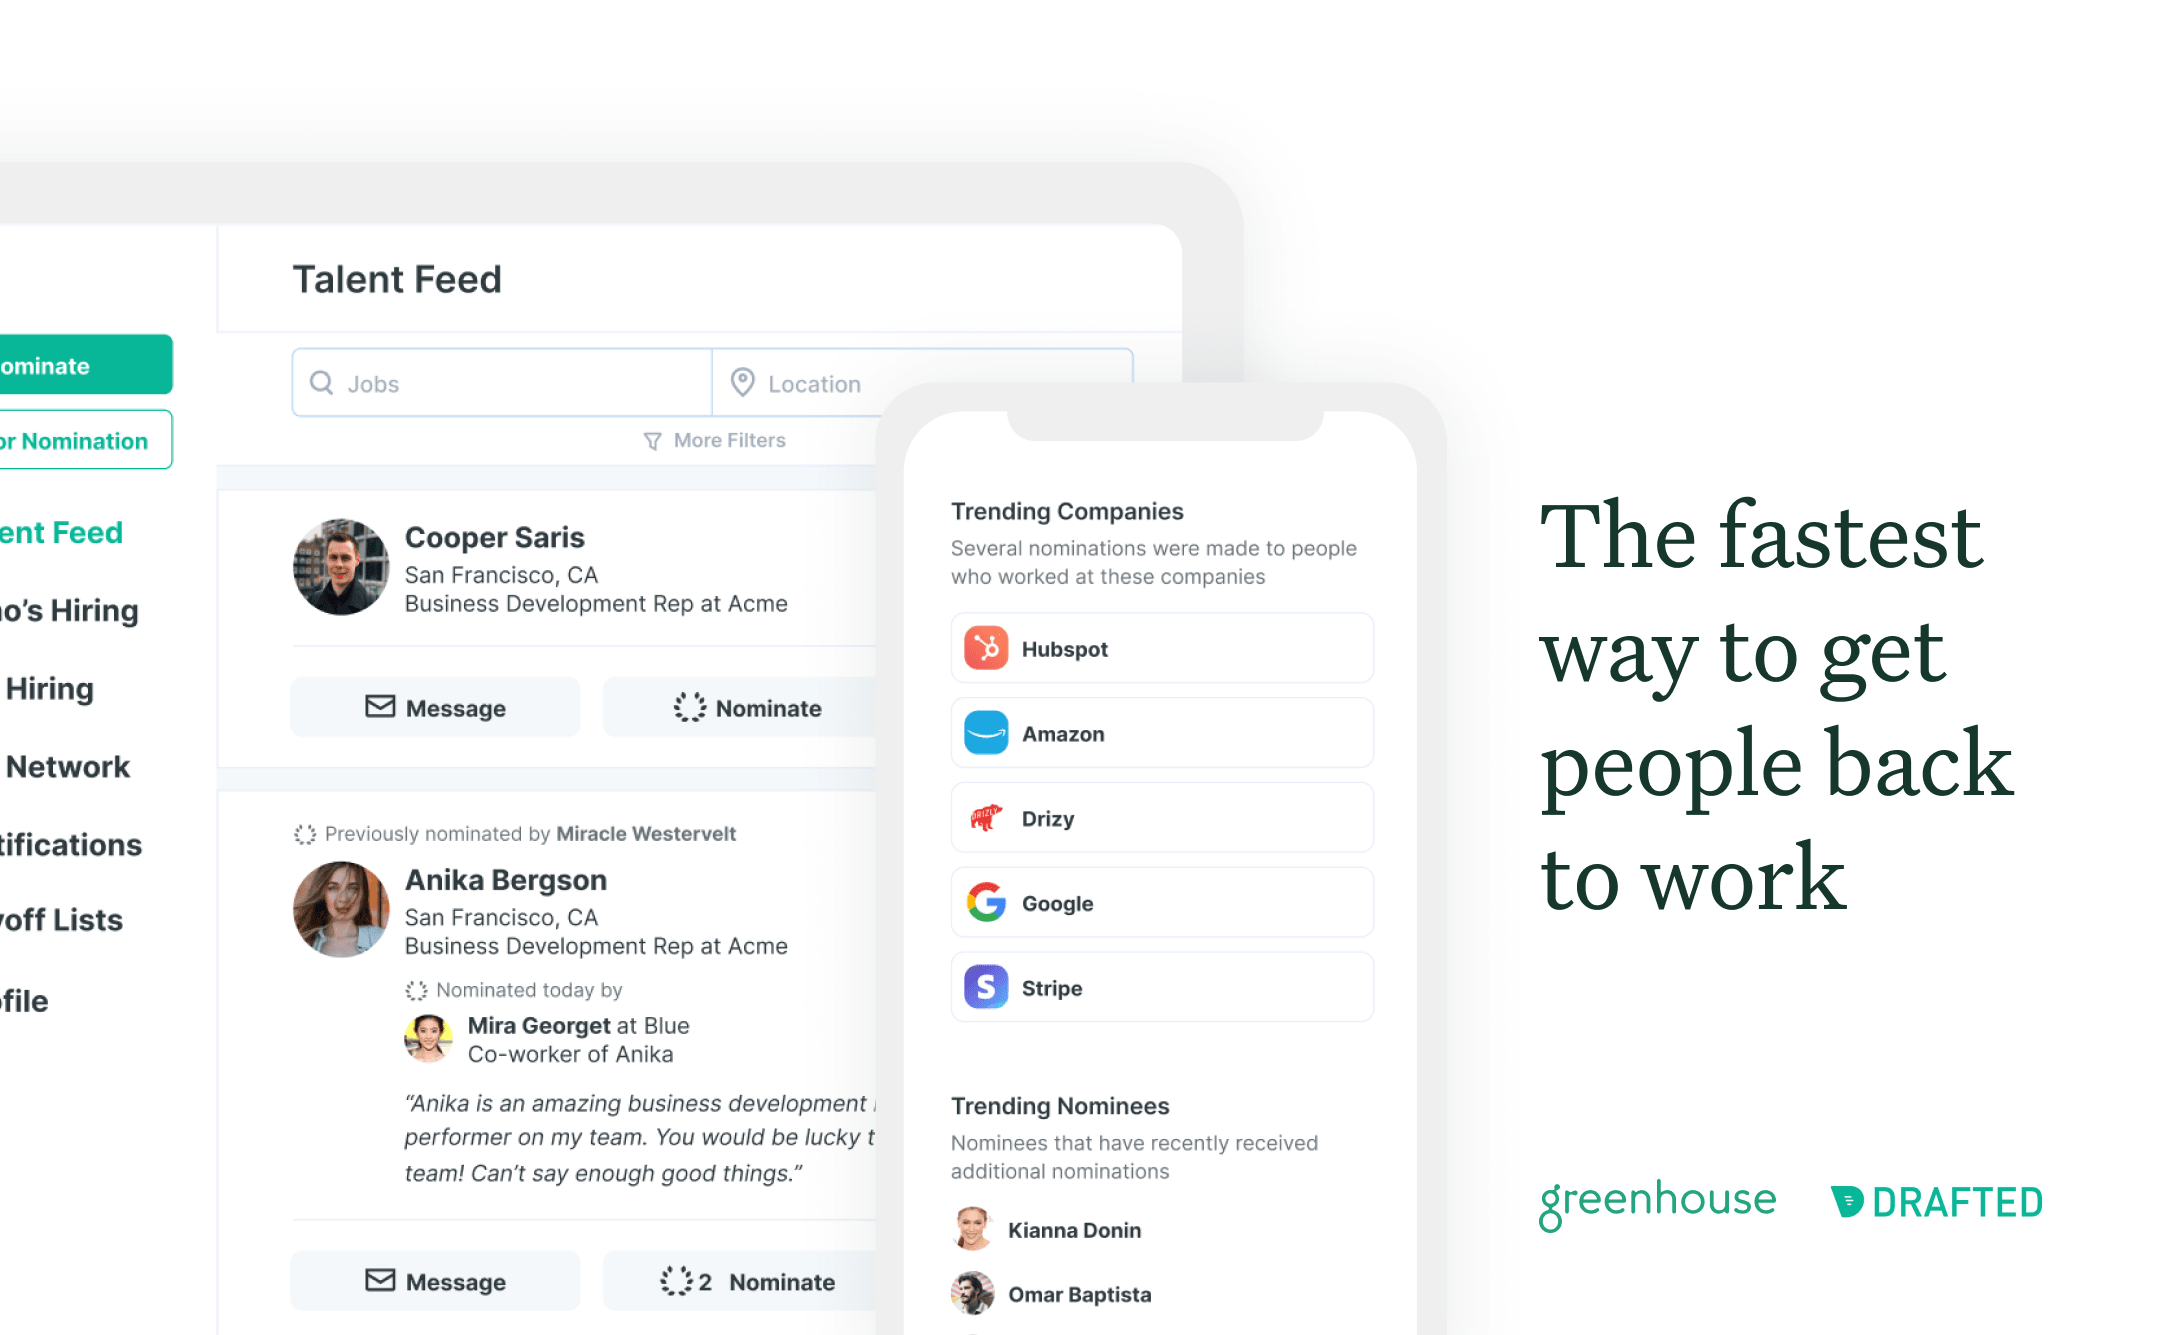 """Drafted user interface, text reads """"The fastest way to get people back to work"""""""